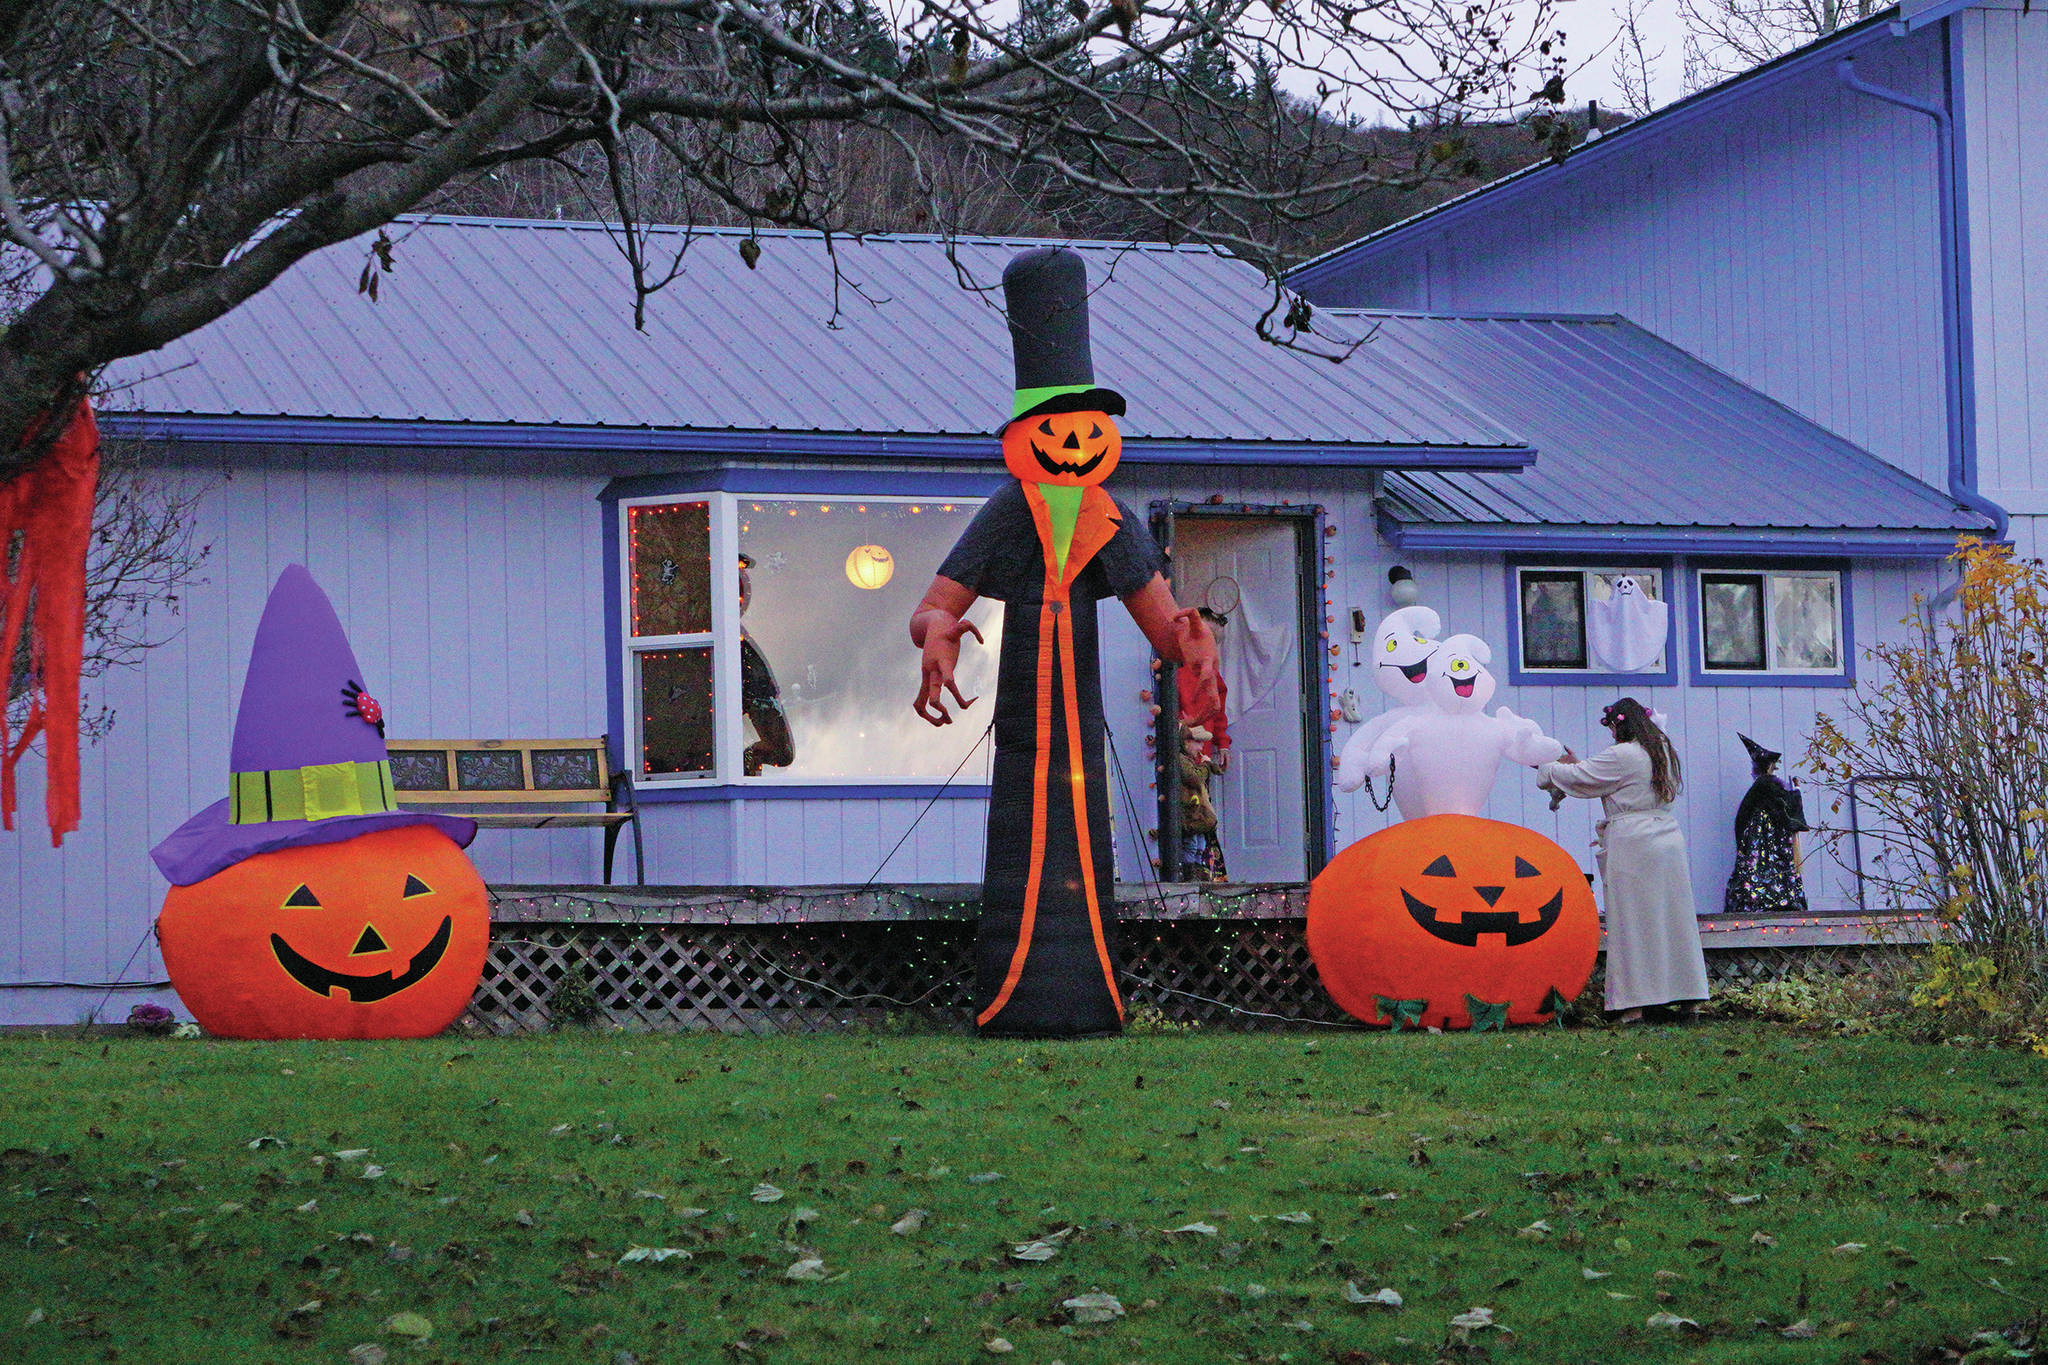 Halloween trick-or-treaters visit the Linda and David Etzwiler home, one of several homes decorated on Bayview Avenue, on Oct. 31, 2019, in Homer, Alaska. (Photo by Michael Armstrong/Homer News)